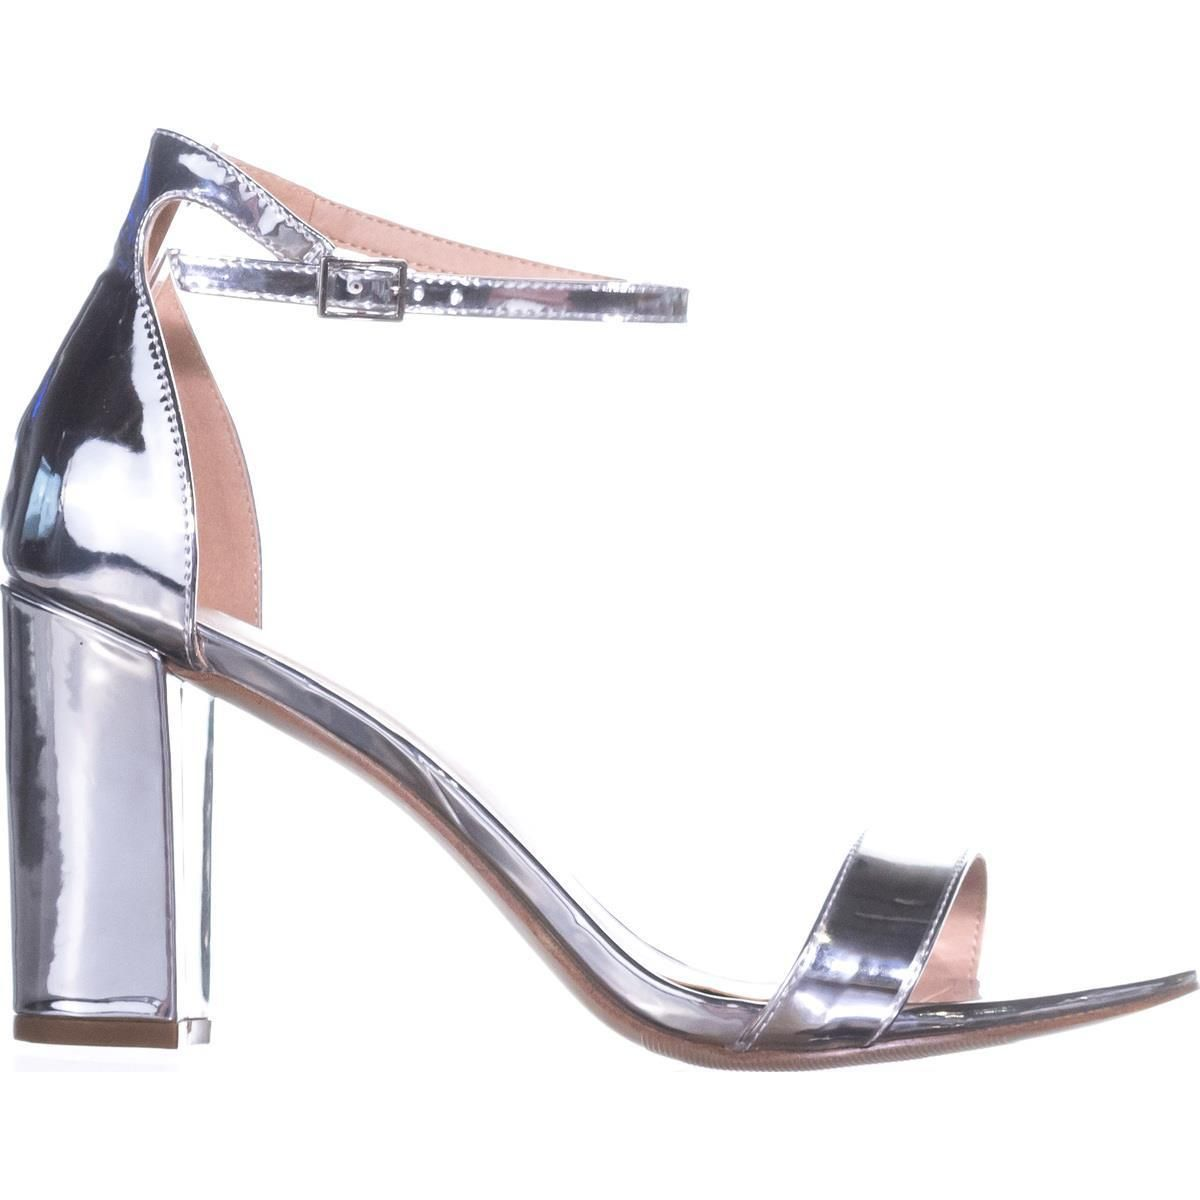 4a47215de13 madden girl Beella Ankle Strap Dress Sandals Silver Metallic 10 US   maddengirl  metallic  anklestrap  heels  sandals  silver  party  shoes   shopping ...